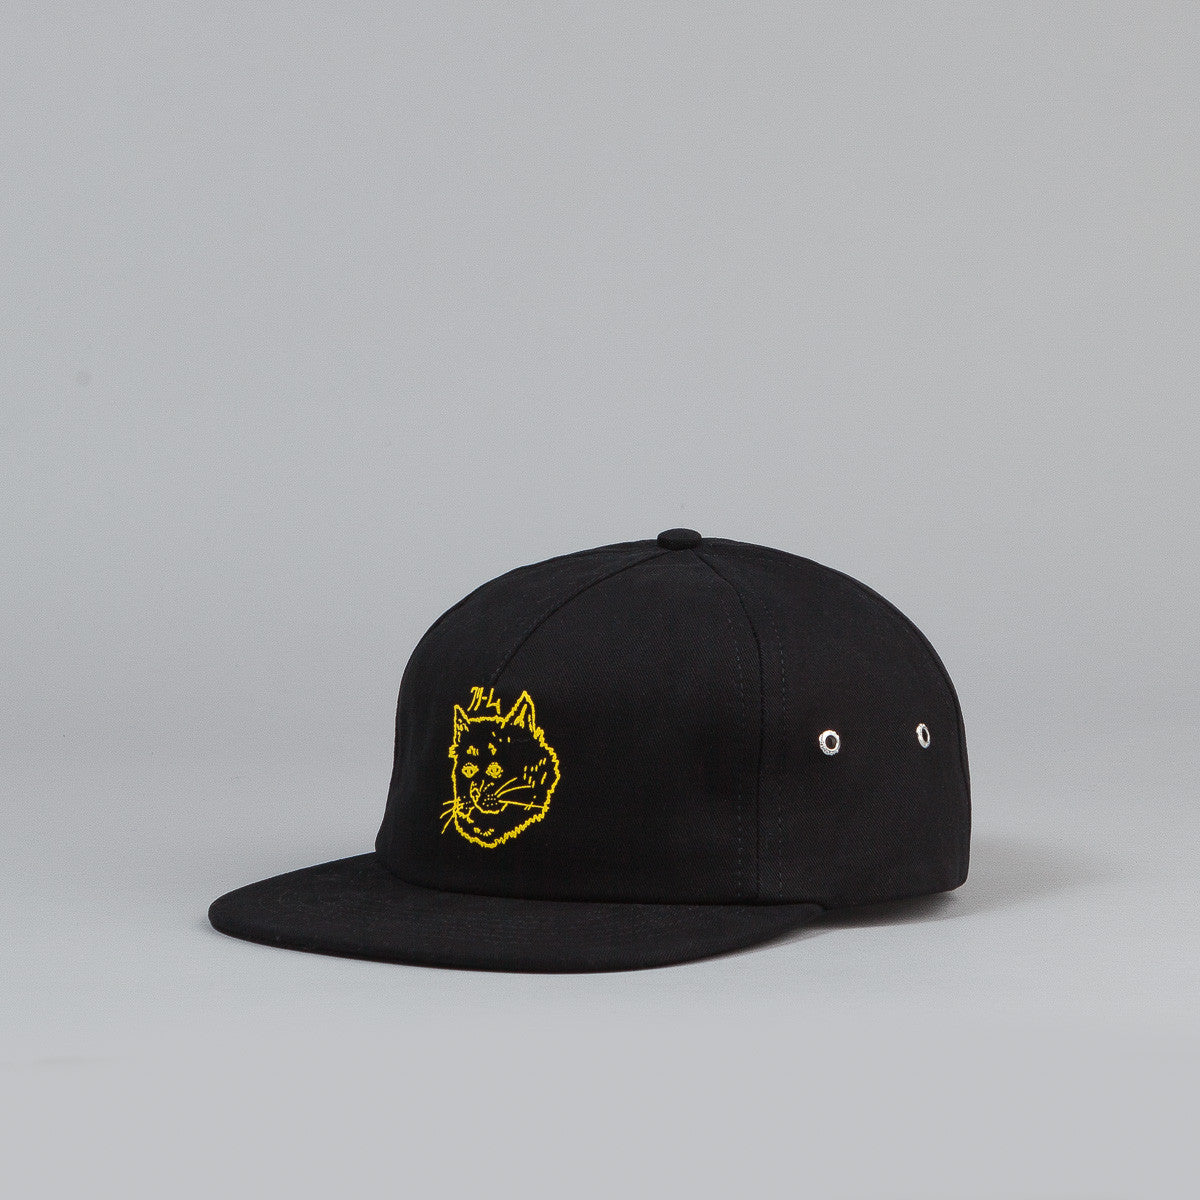 Rip N Dip Japanese Cream 5 Panel Cap